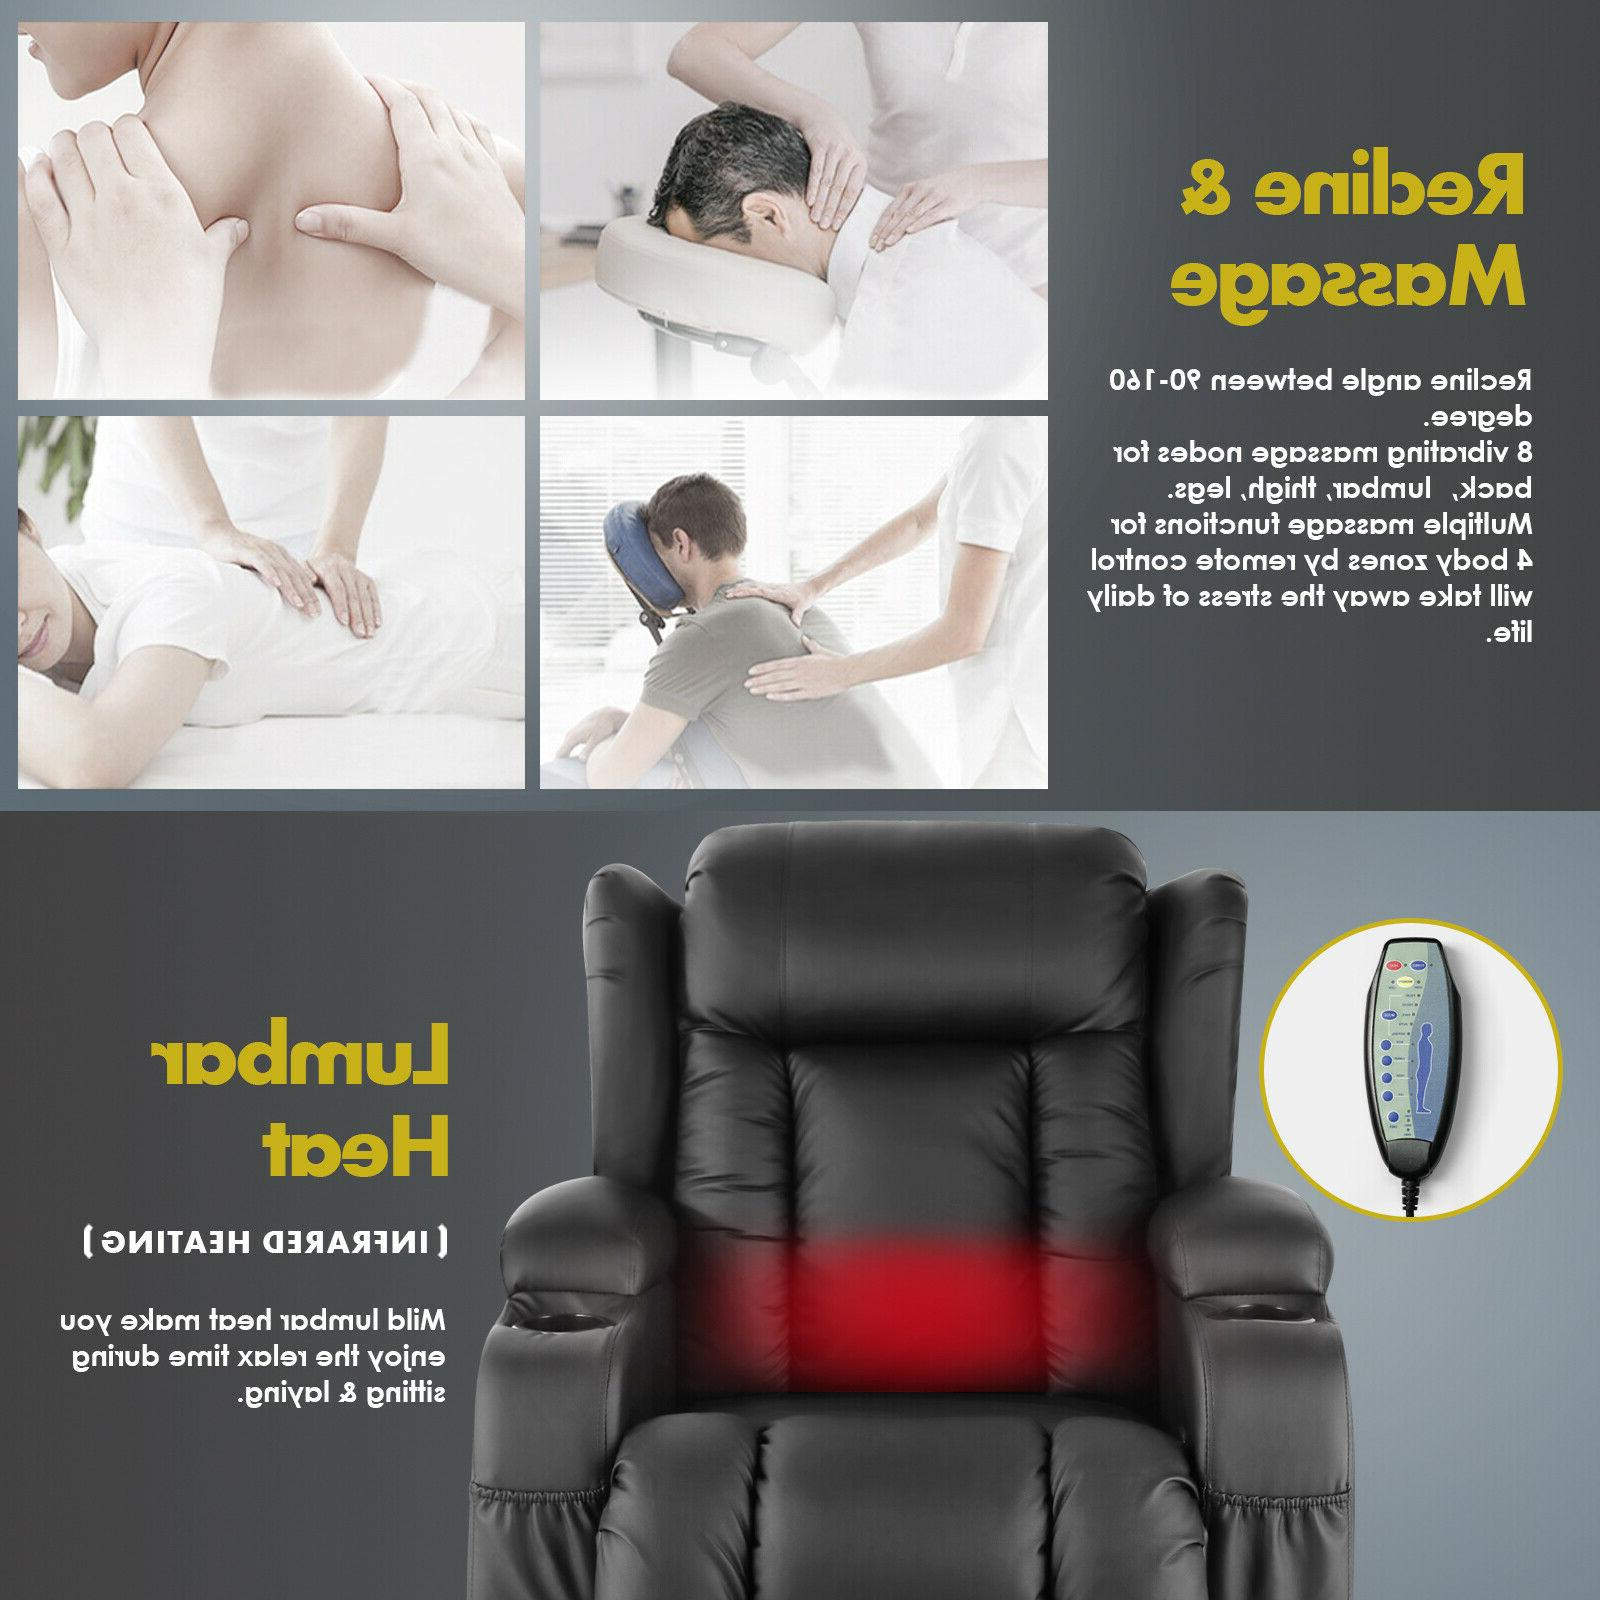 Oversize Massage Recliner Vibrate w/Control